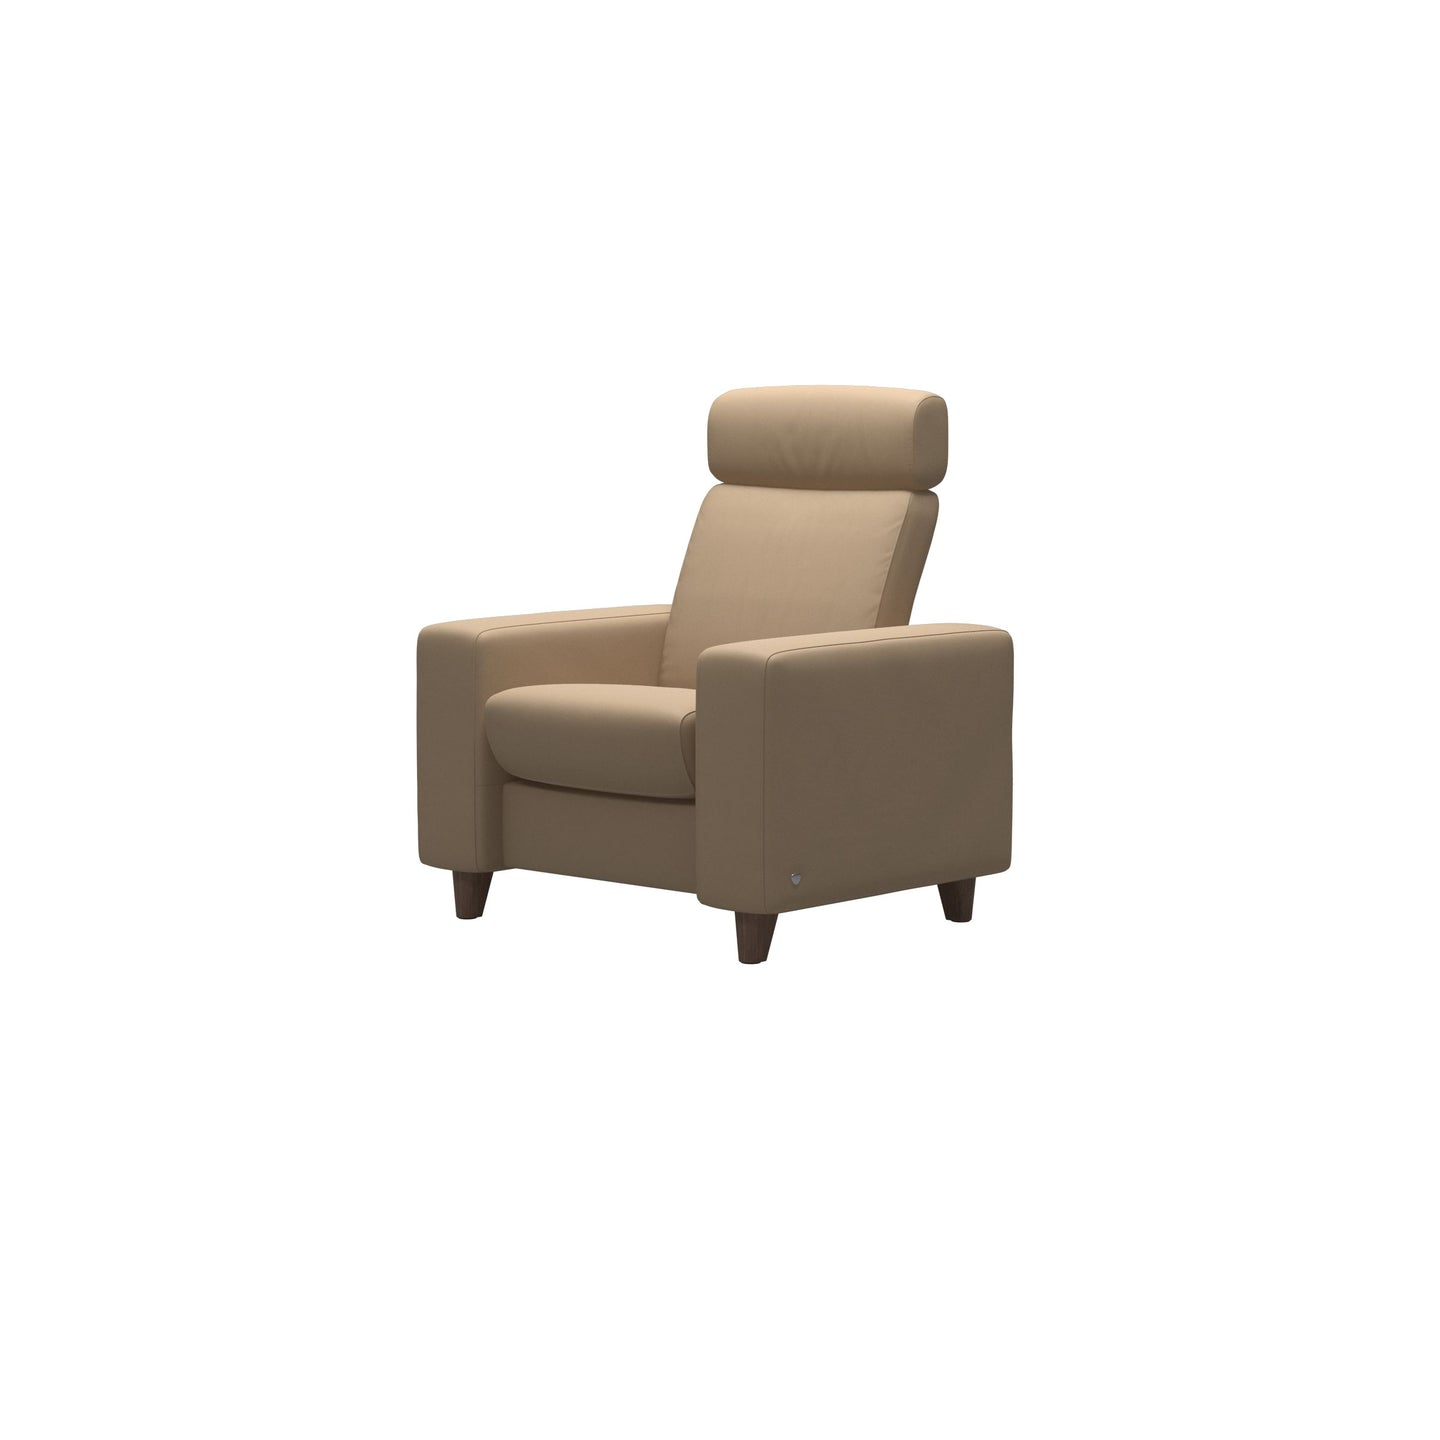 Stressless® Arion 19 A20 chair High back